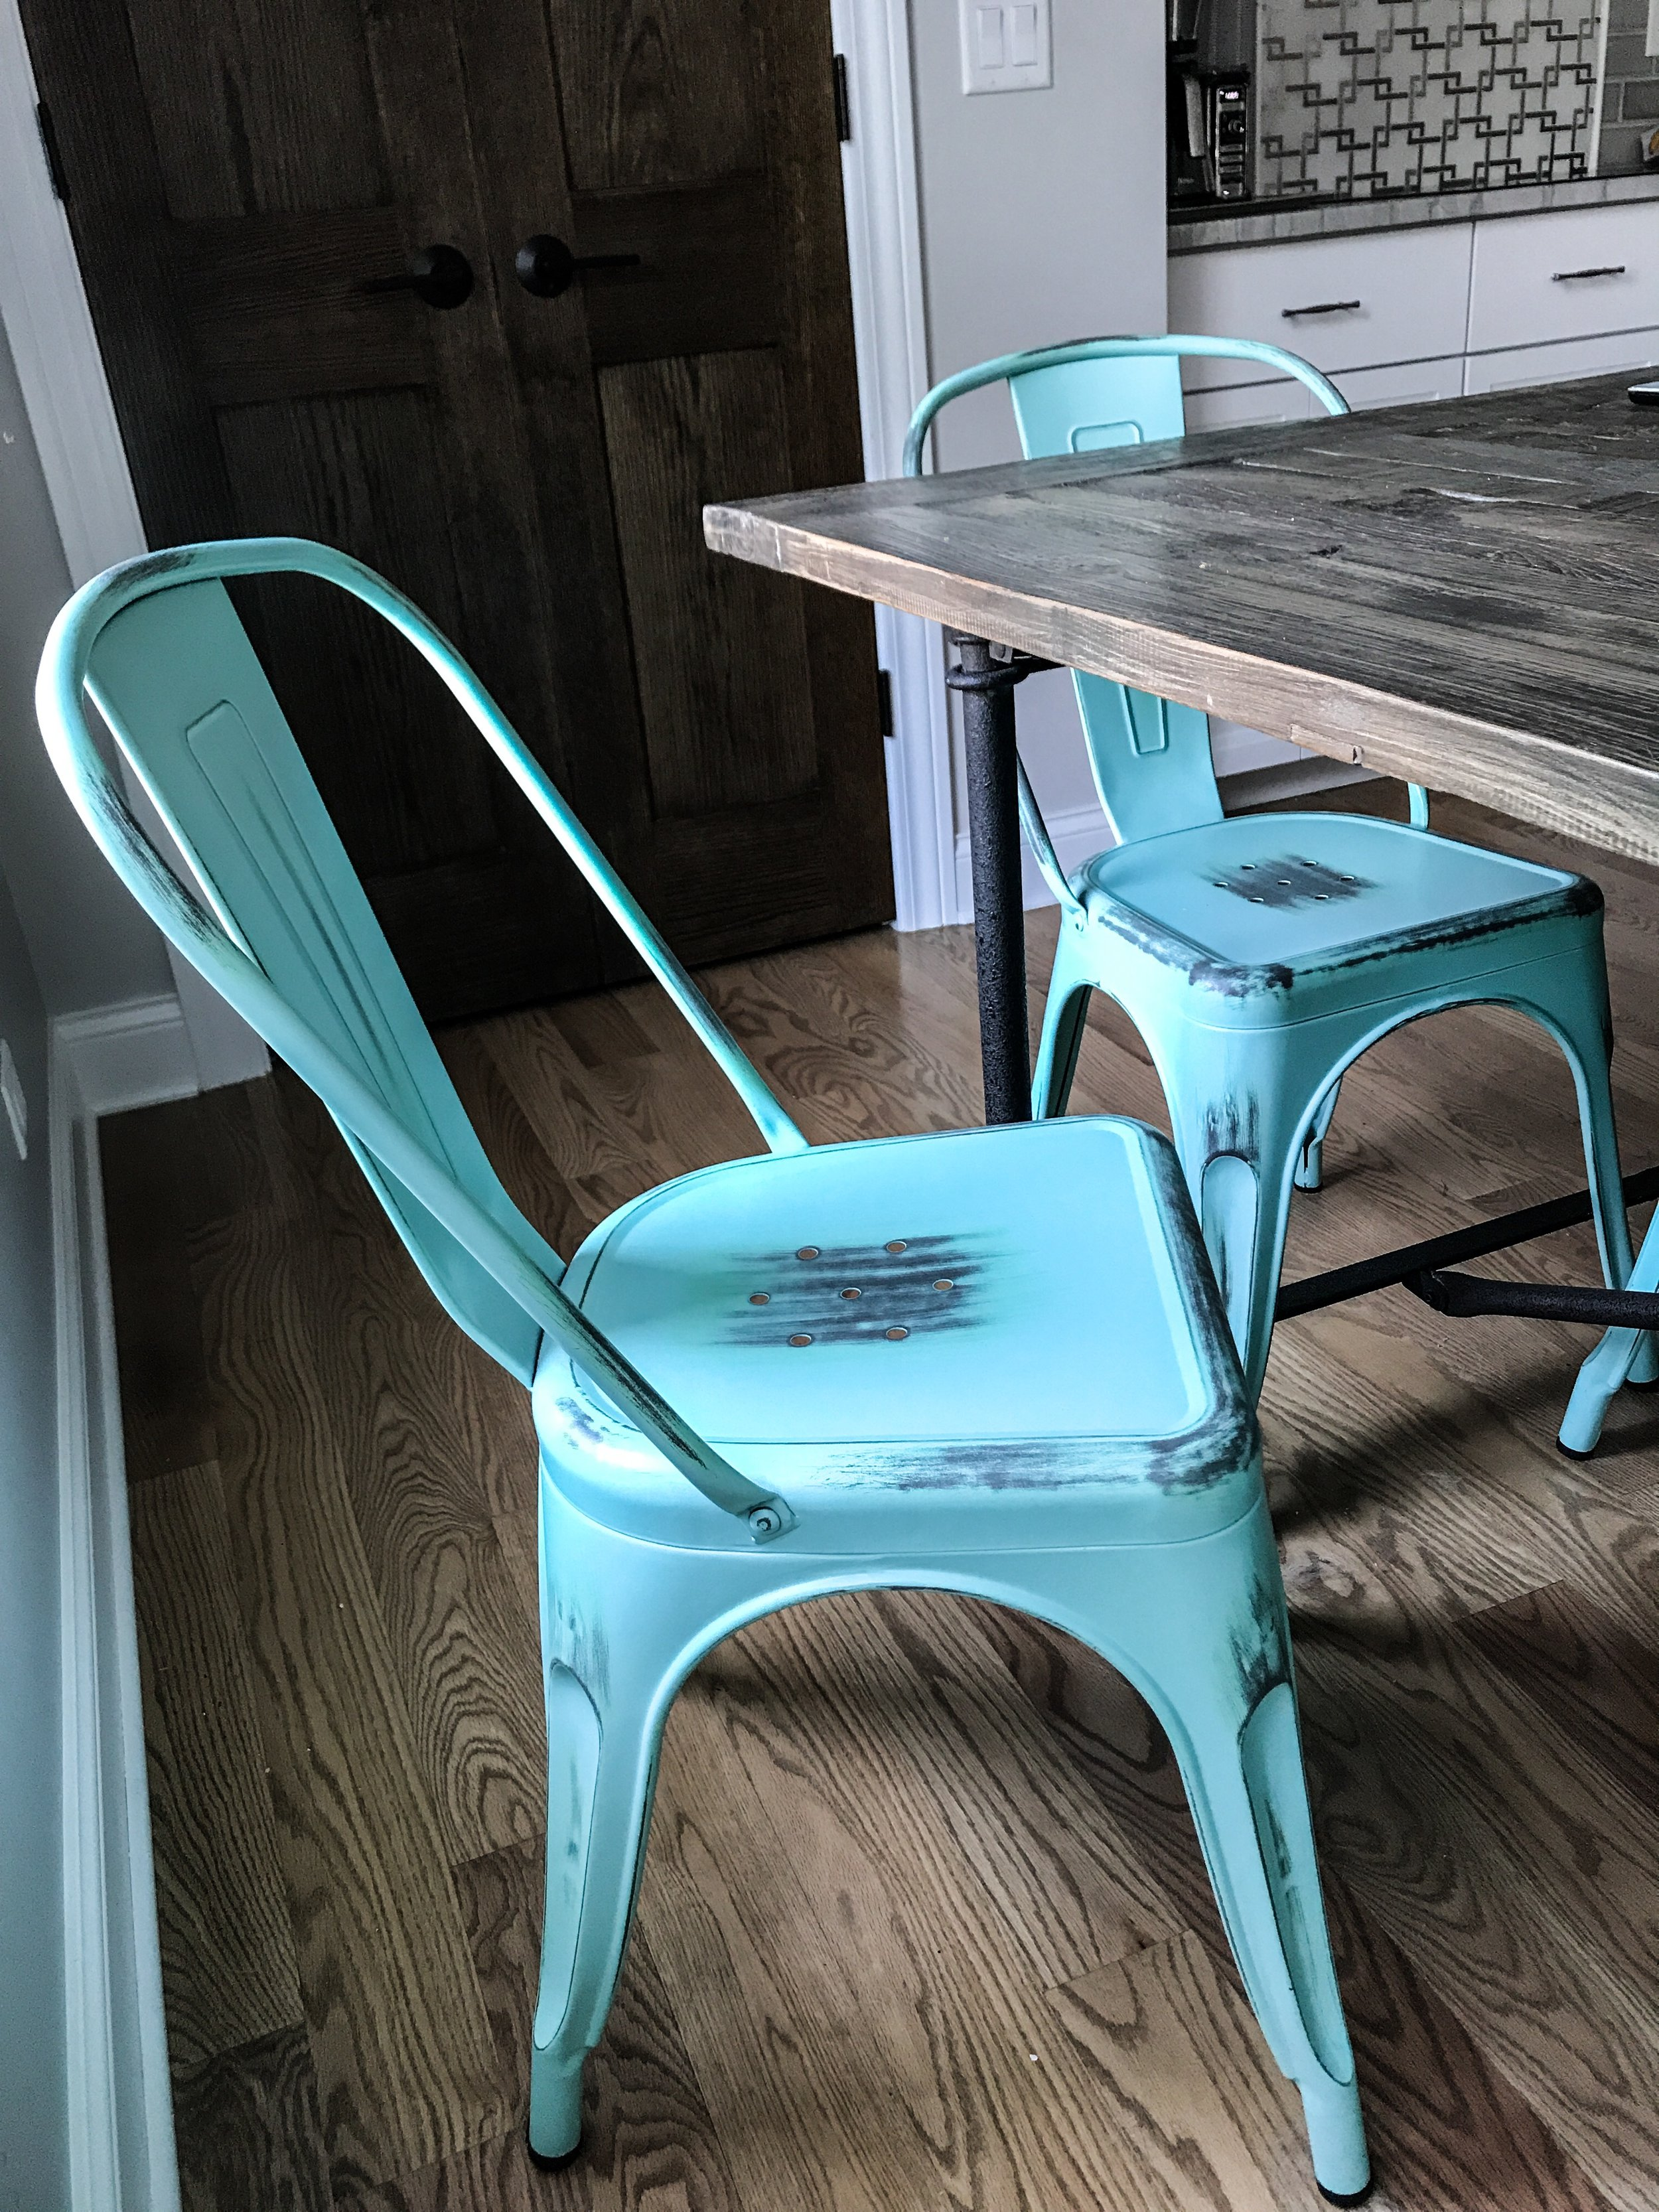 Bastille Cafe Chair In Antique Turquoise. #inmod #sponsored